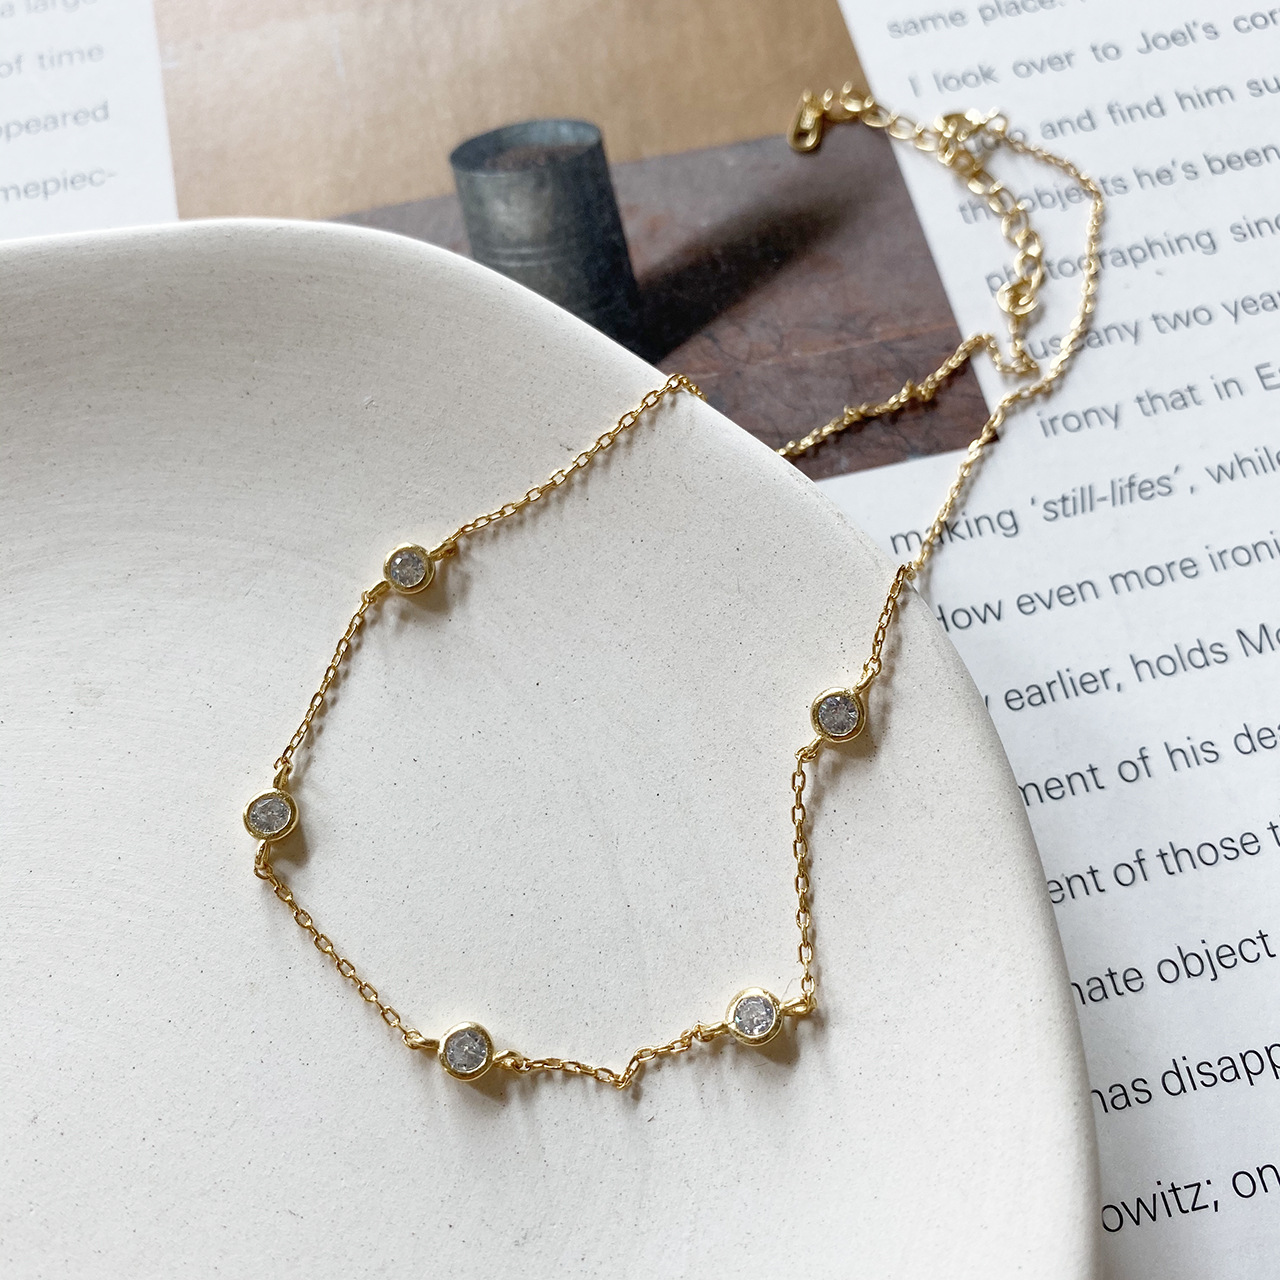 Crystal Star Necklace Choker for Women Genuine 925 Sterling Silver Charm High Quality Necklaces Pendants Gold Color Girl Jewelry